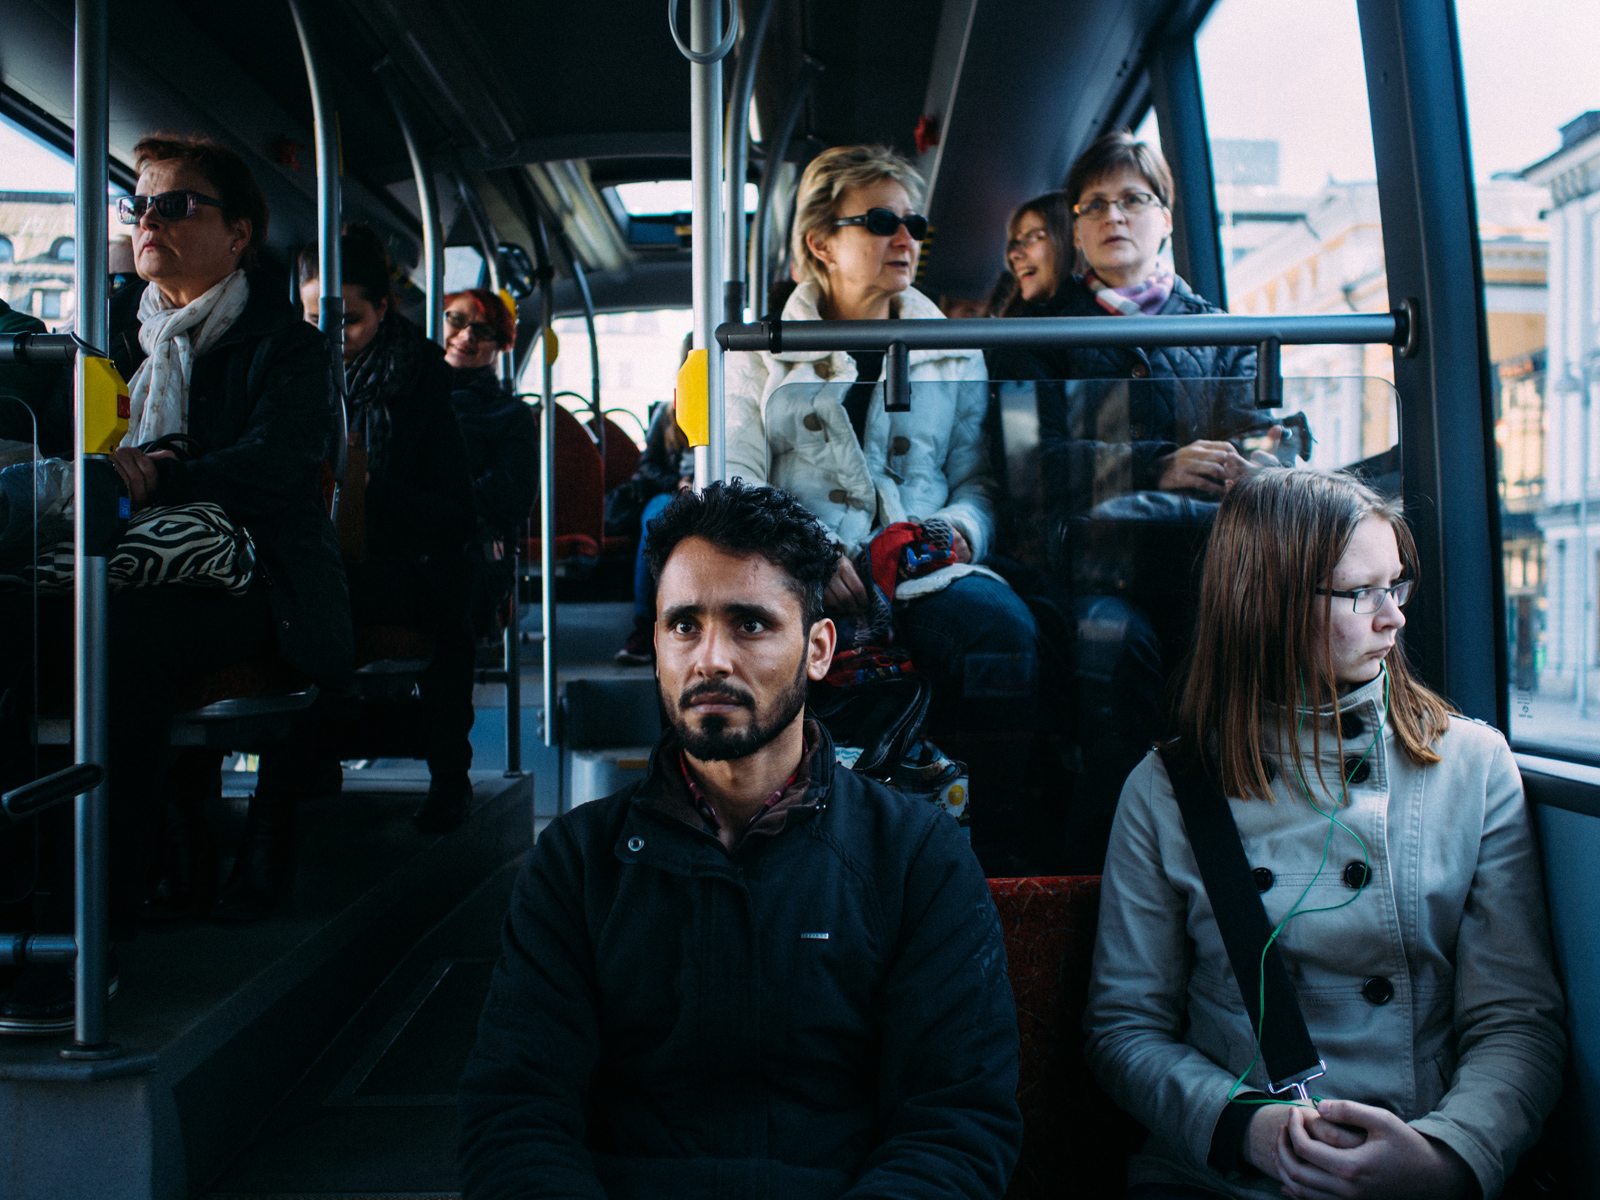 Outi goes to the city almost every day so If Ihab and Yousuf need to go to the center she gives them a lift. Other than that there are only two busses per day to reach the city of Turku: one at 6.40am and one at 4.25pm to come back.